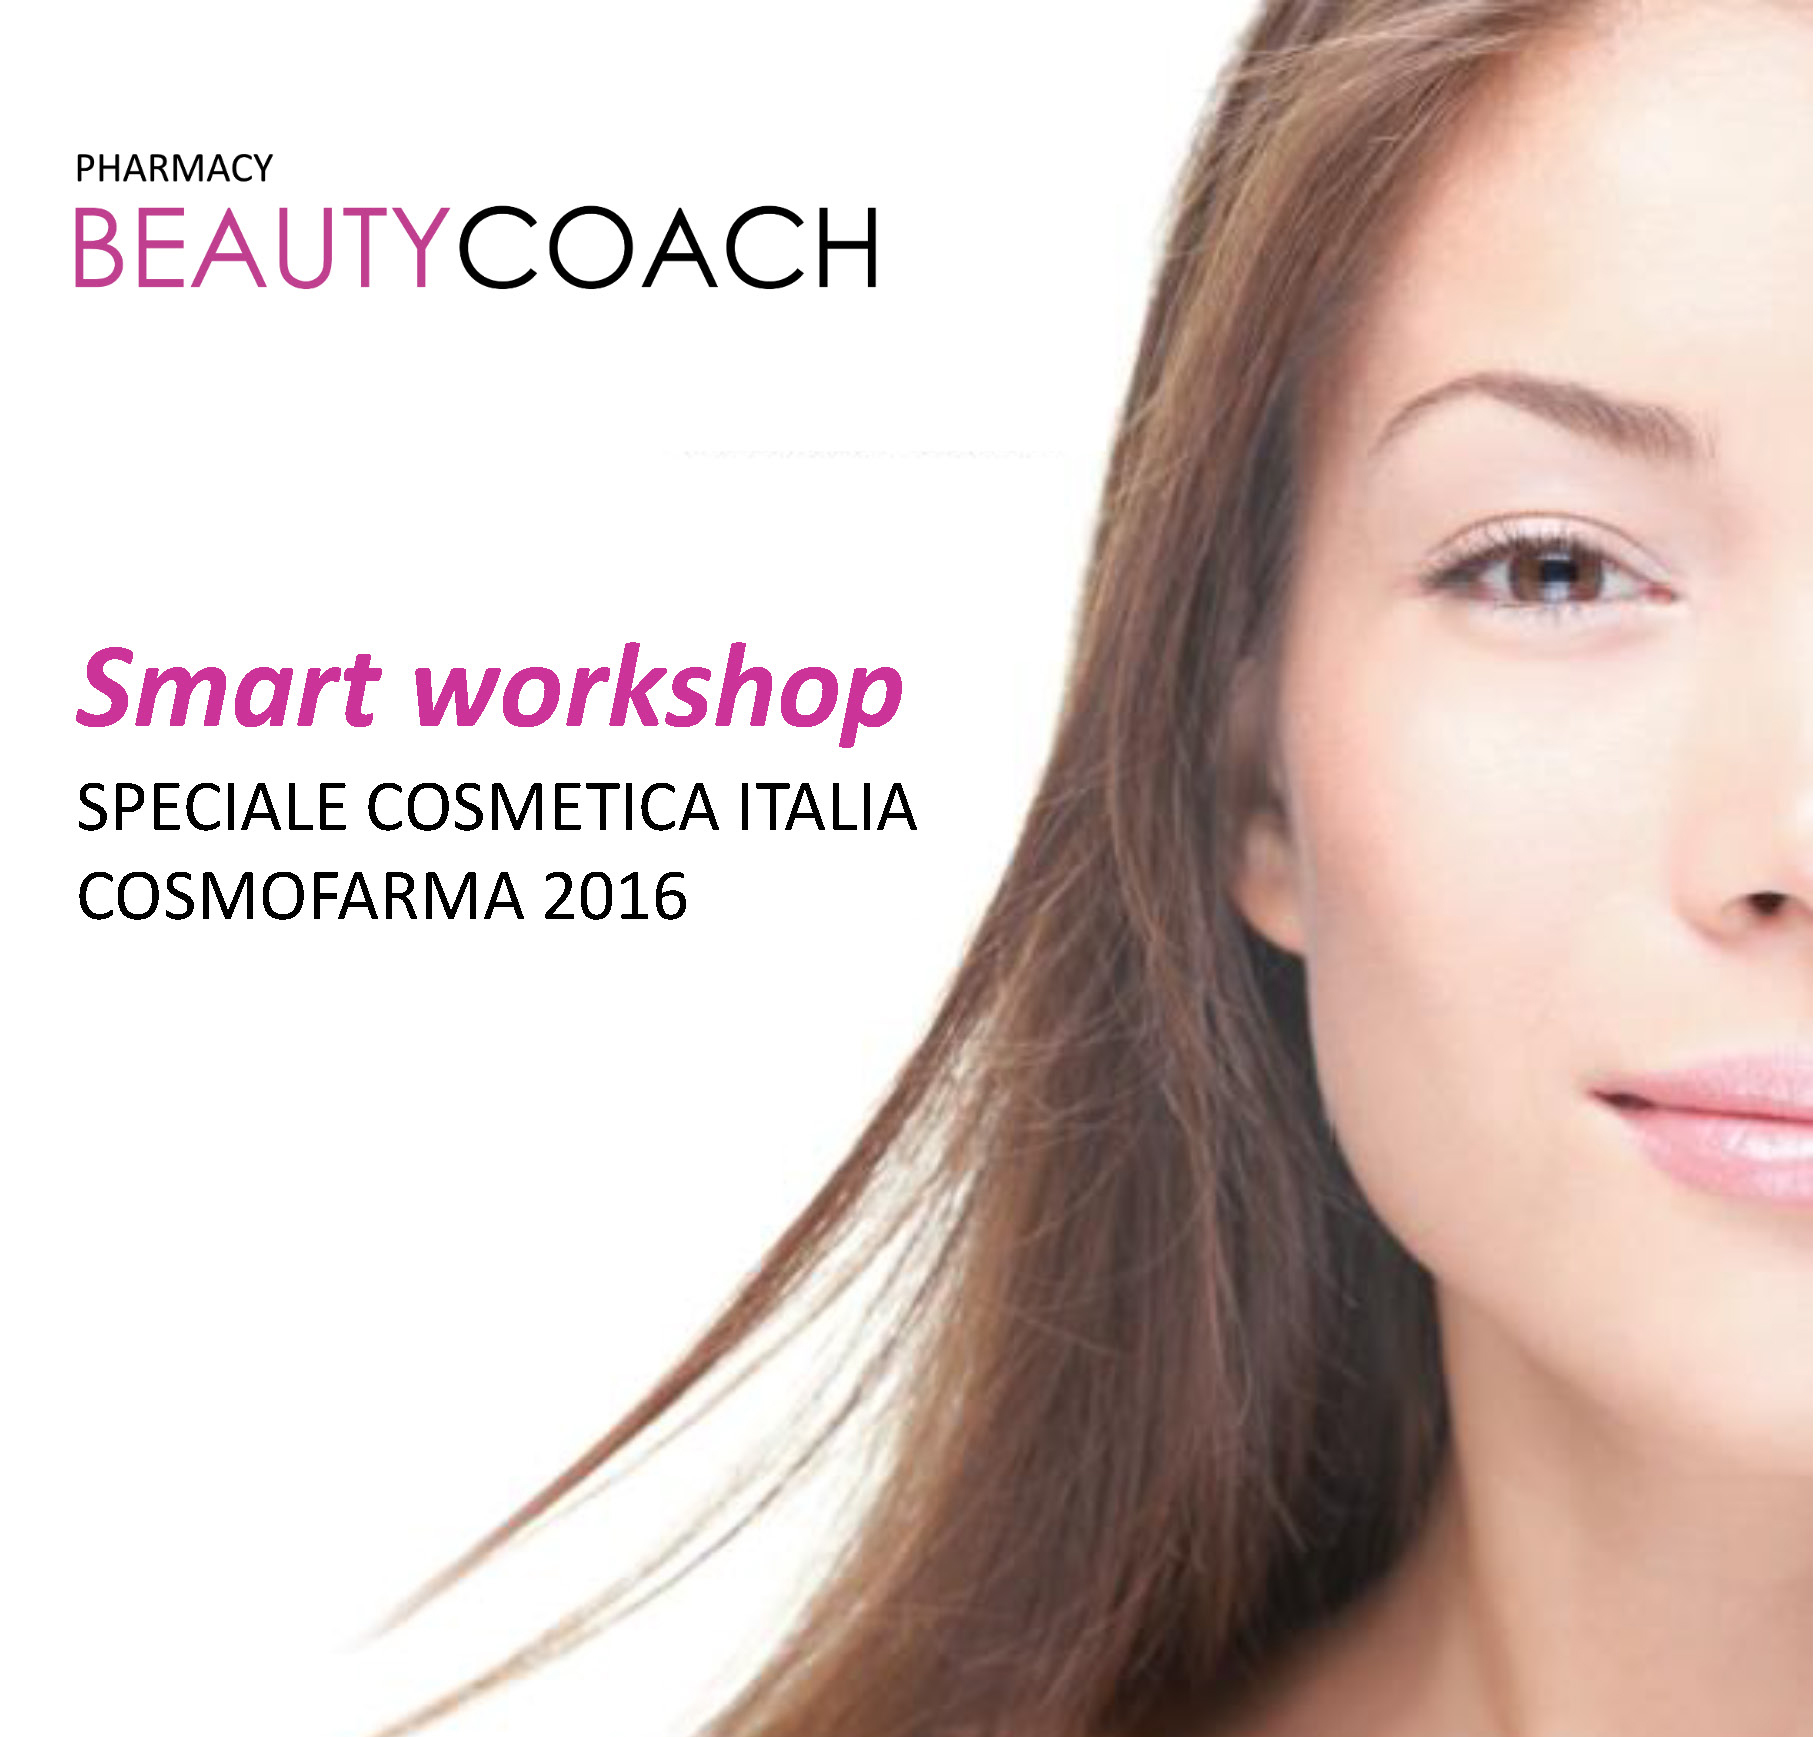 workshop pharmacy beauty coach